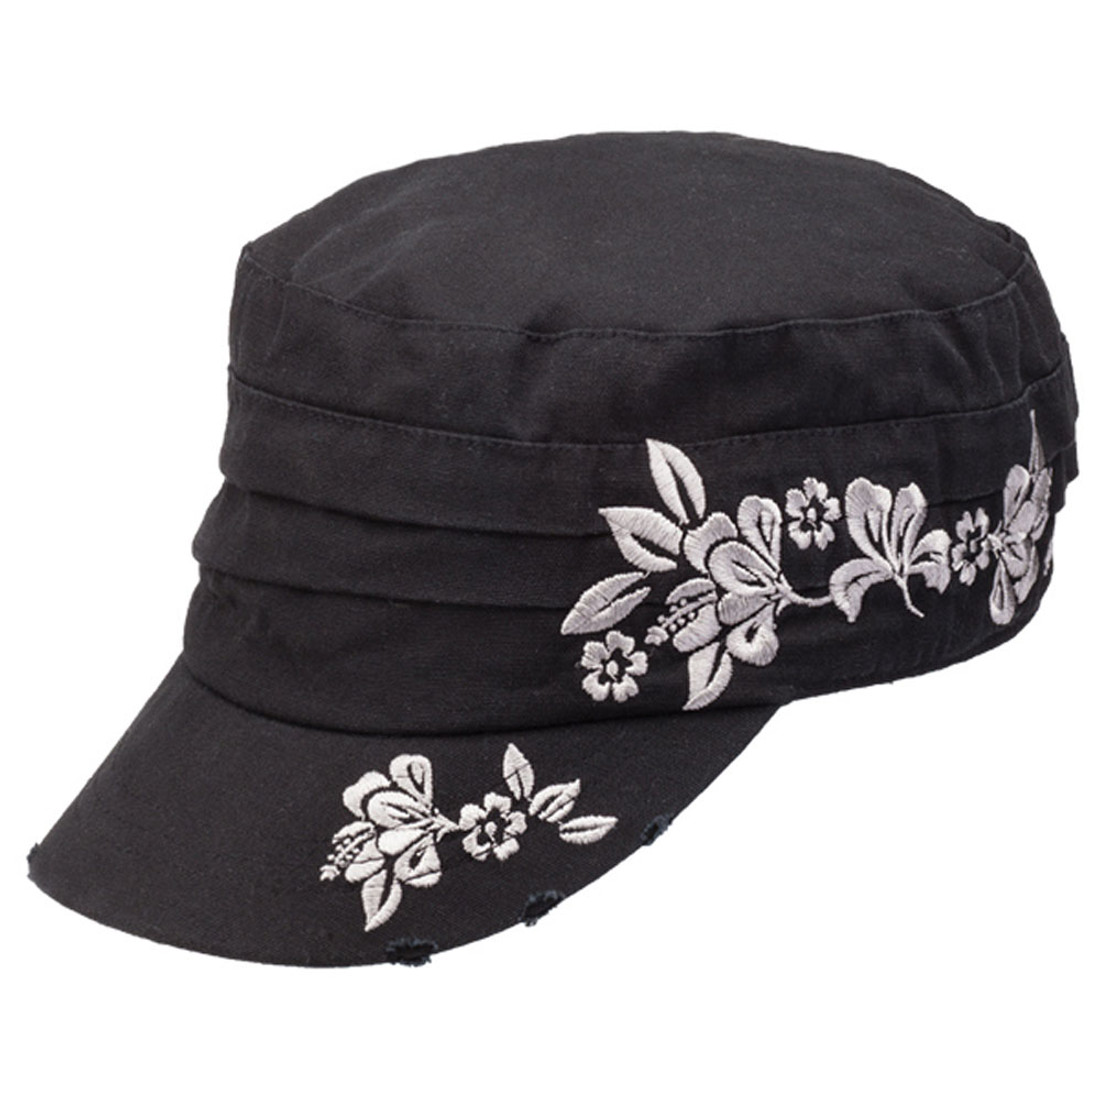 Women's black cap Wahine with floral design.